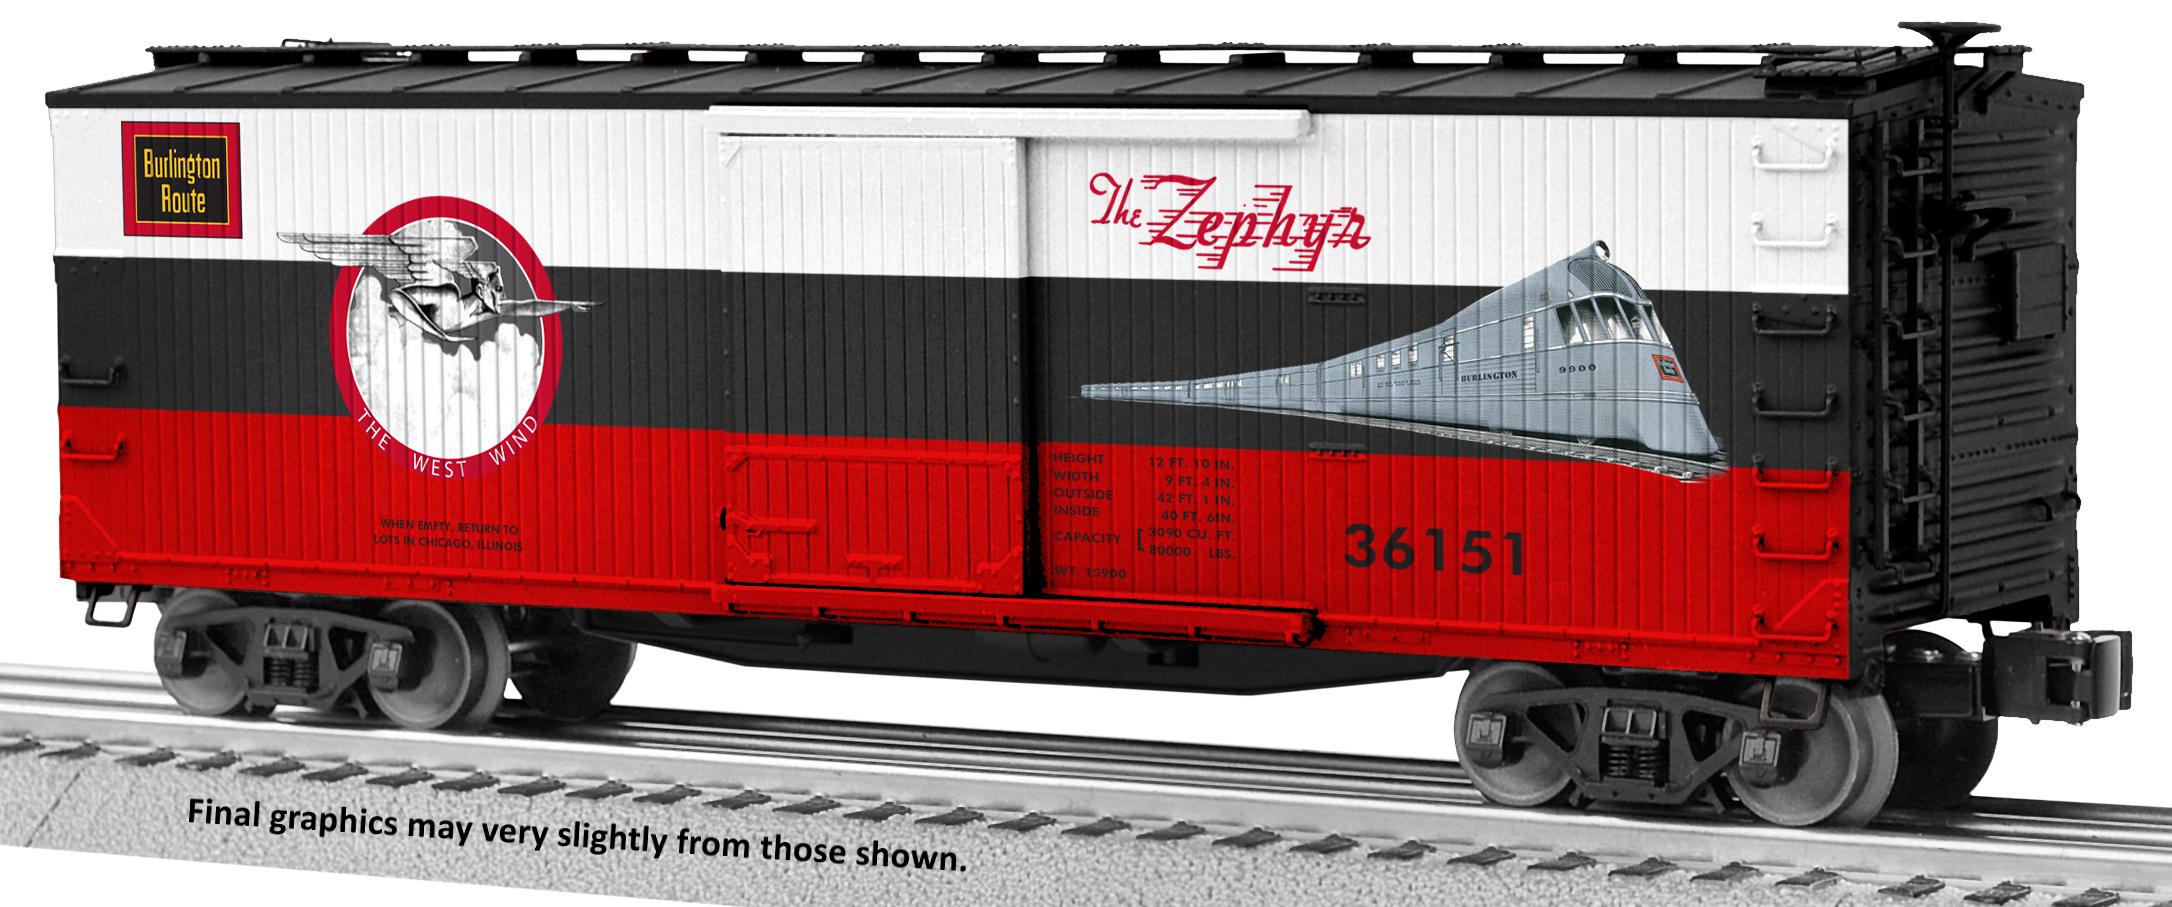 Zephyr Car Cropped